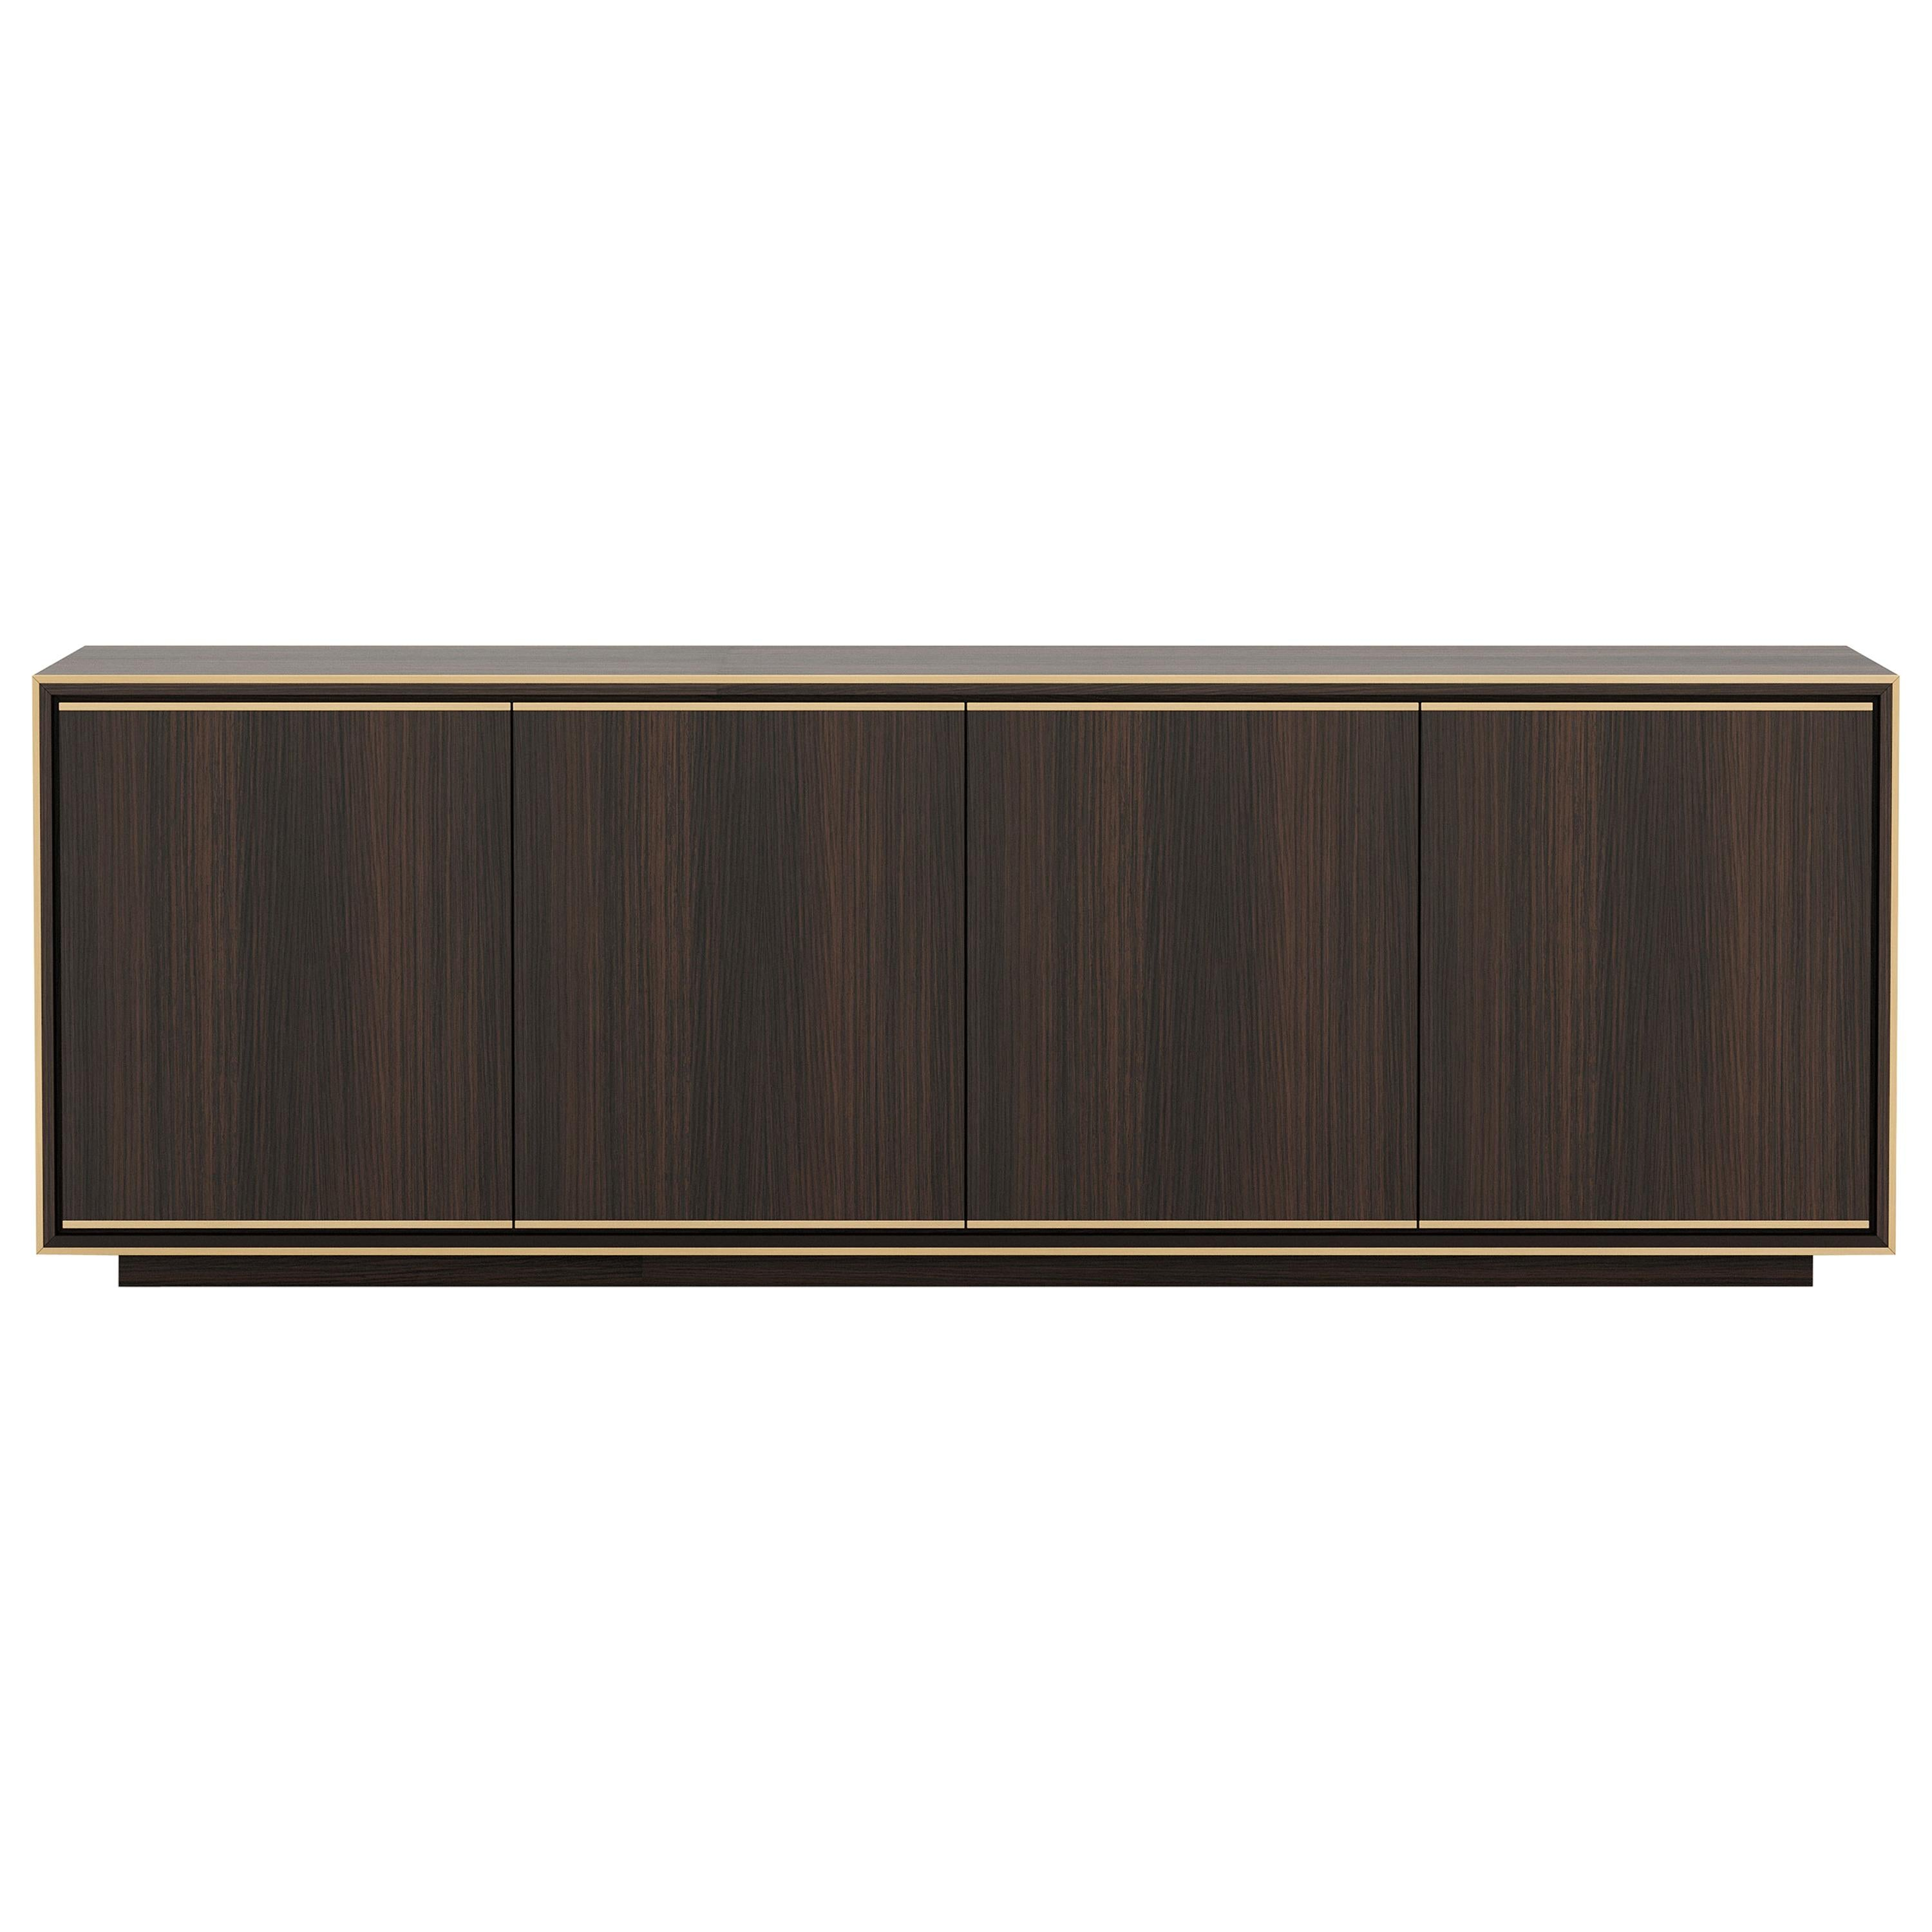 Rick Sideboard, Portuguese 21st Century Contemporary